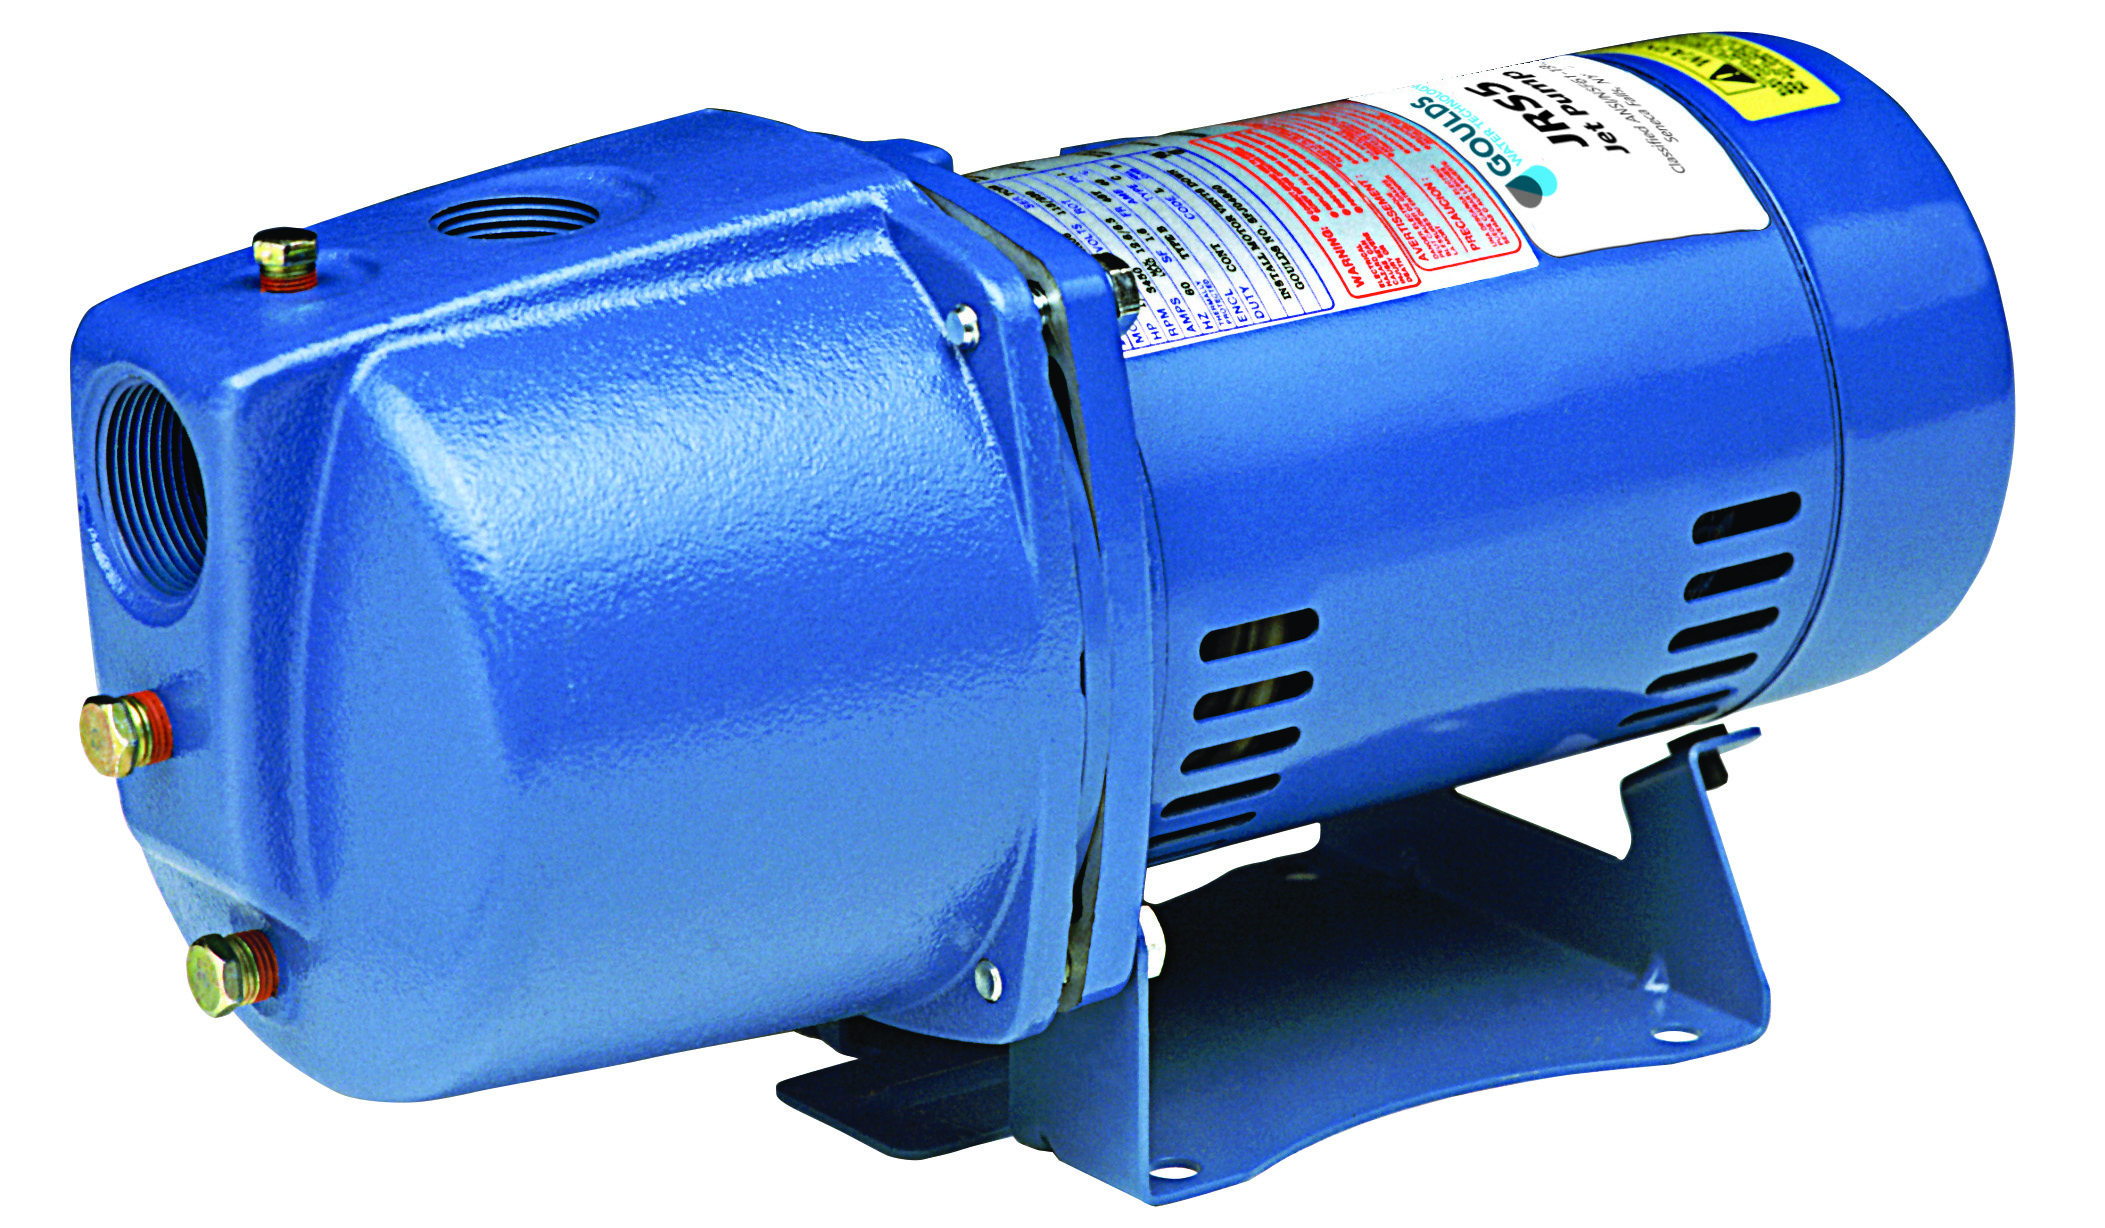 JRS5 1/2 HP Shallow Well Jet Pump